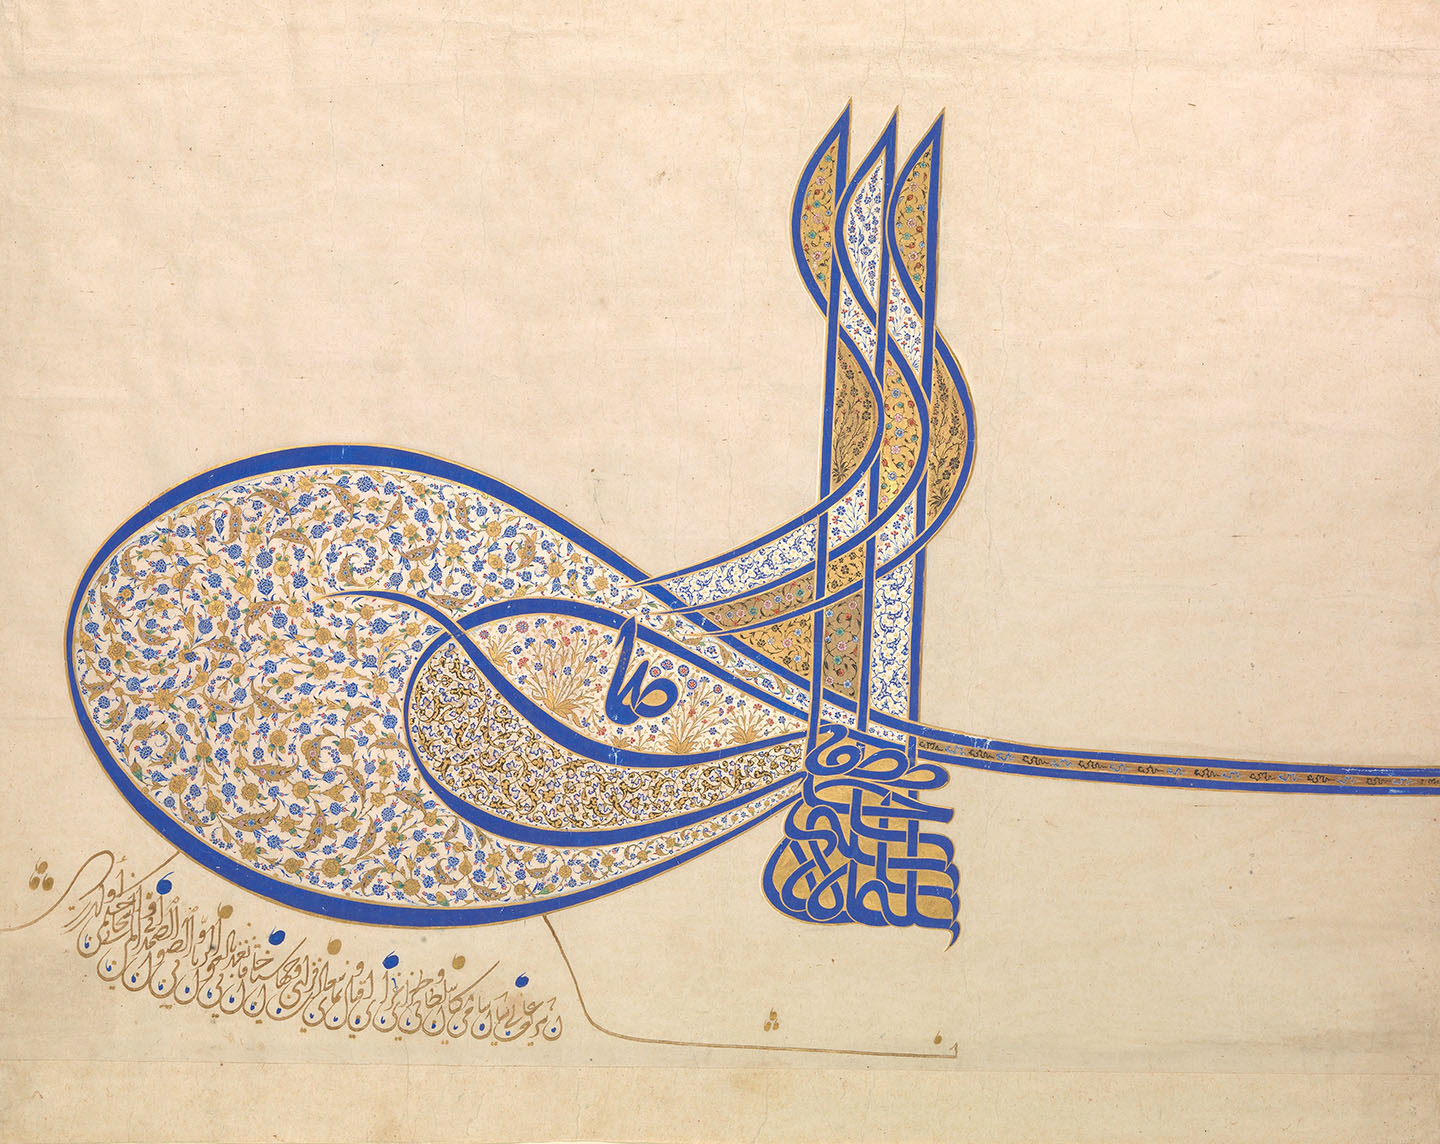 A highly ornate calligraphic Arabic signature in blue and decorated profusely with tiny painted and gilded flowers in blue and white